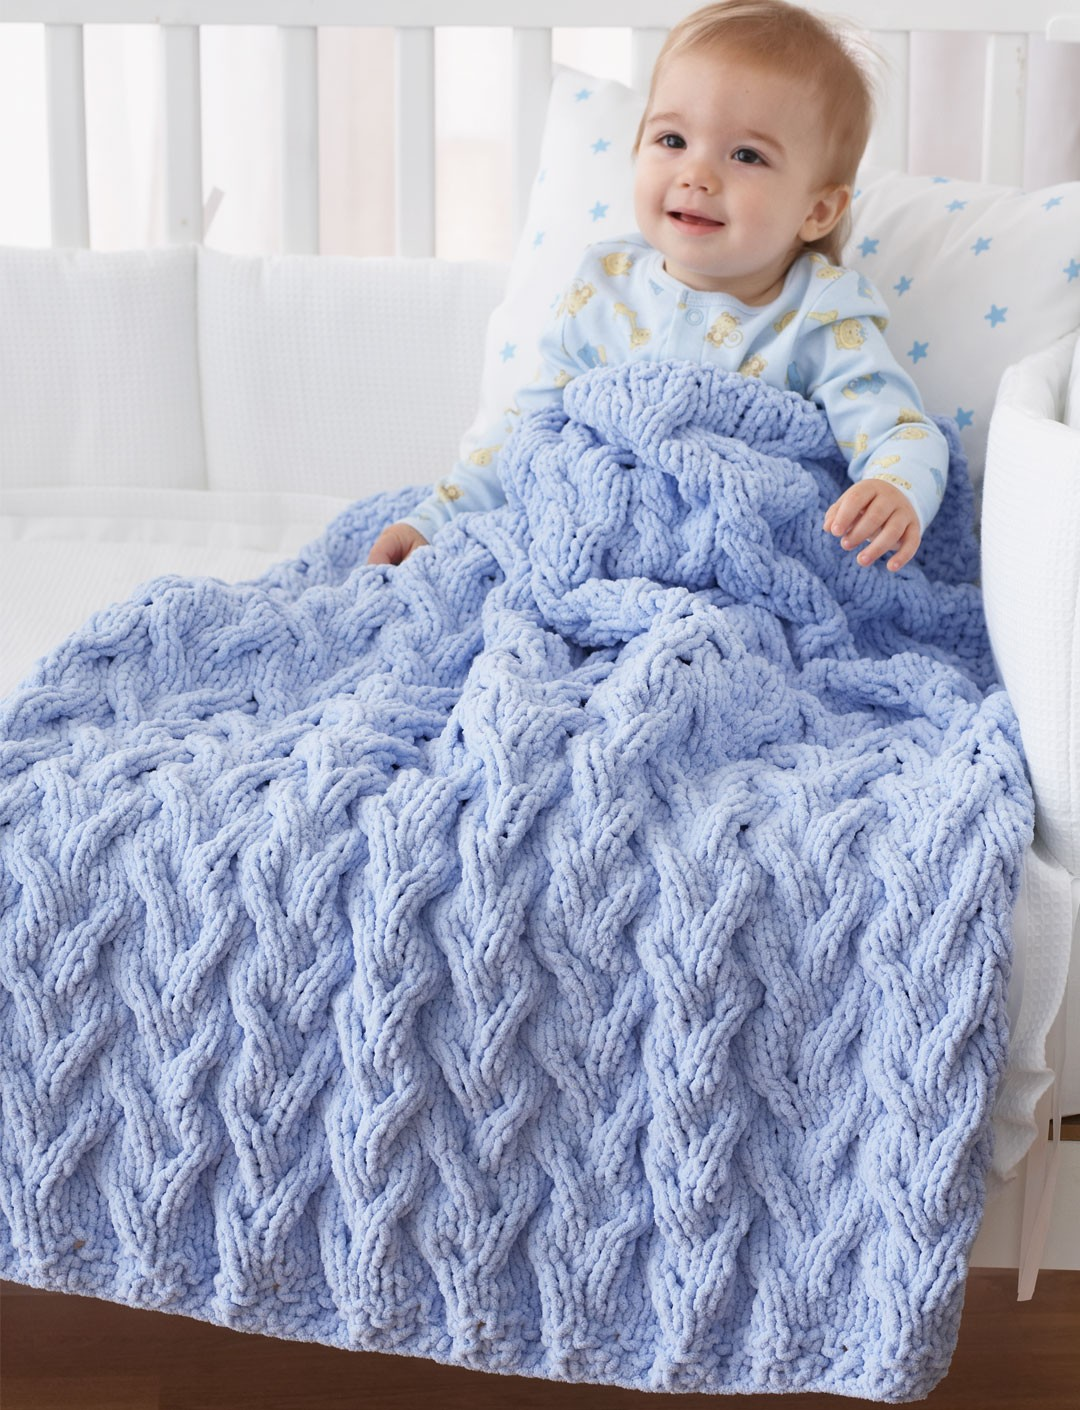 Crochet Patterns Using Bernat Pop Yarn : Shadow Cable Baby Blanket - Patterns Yarnspirations